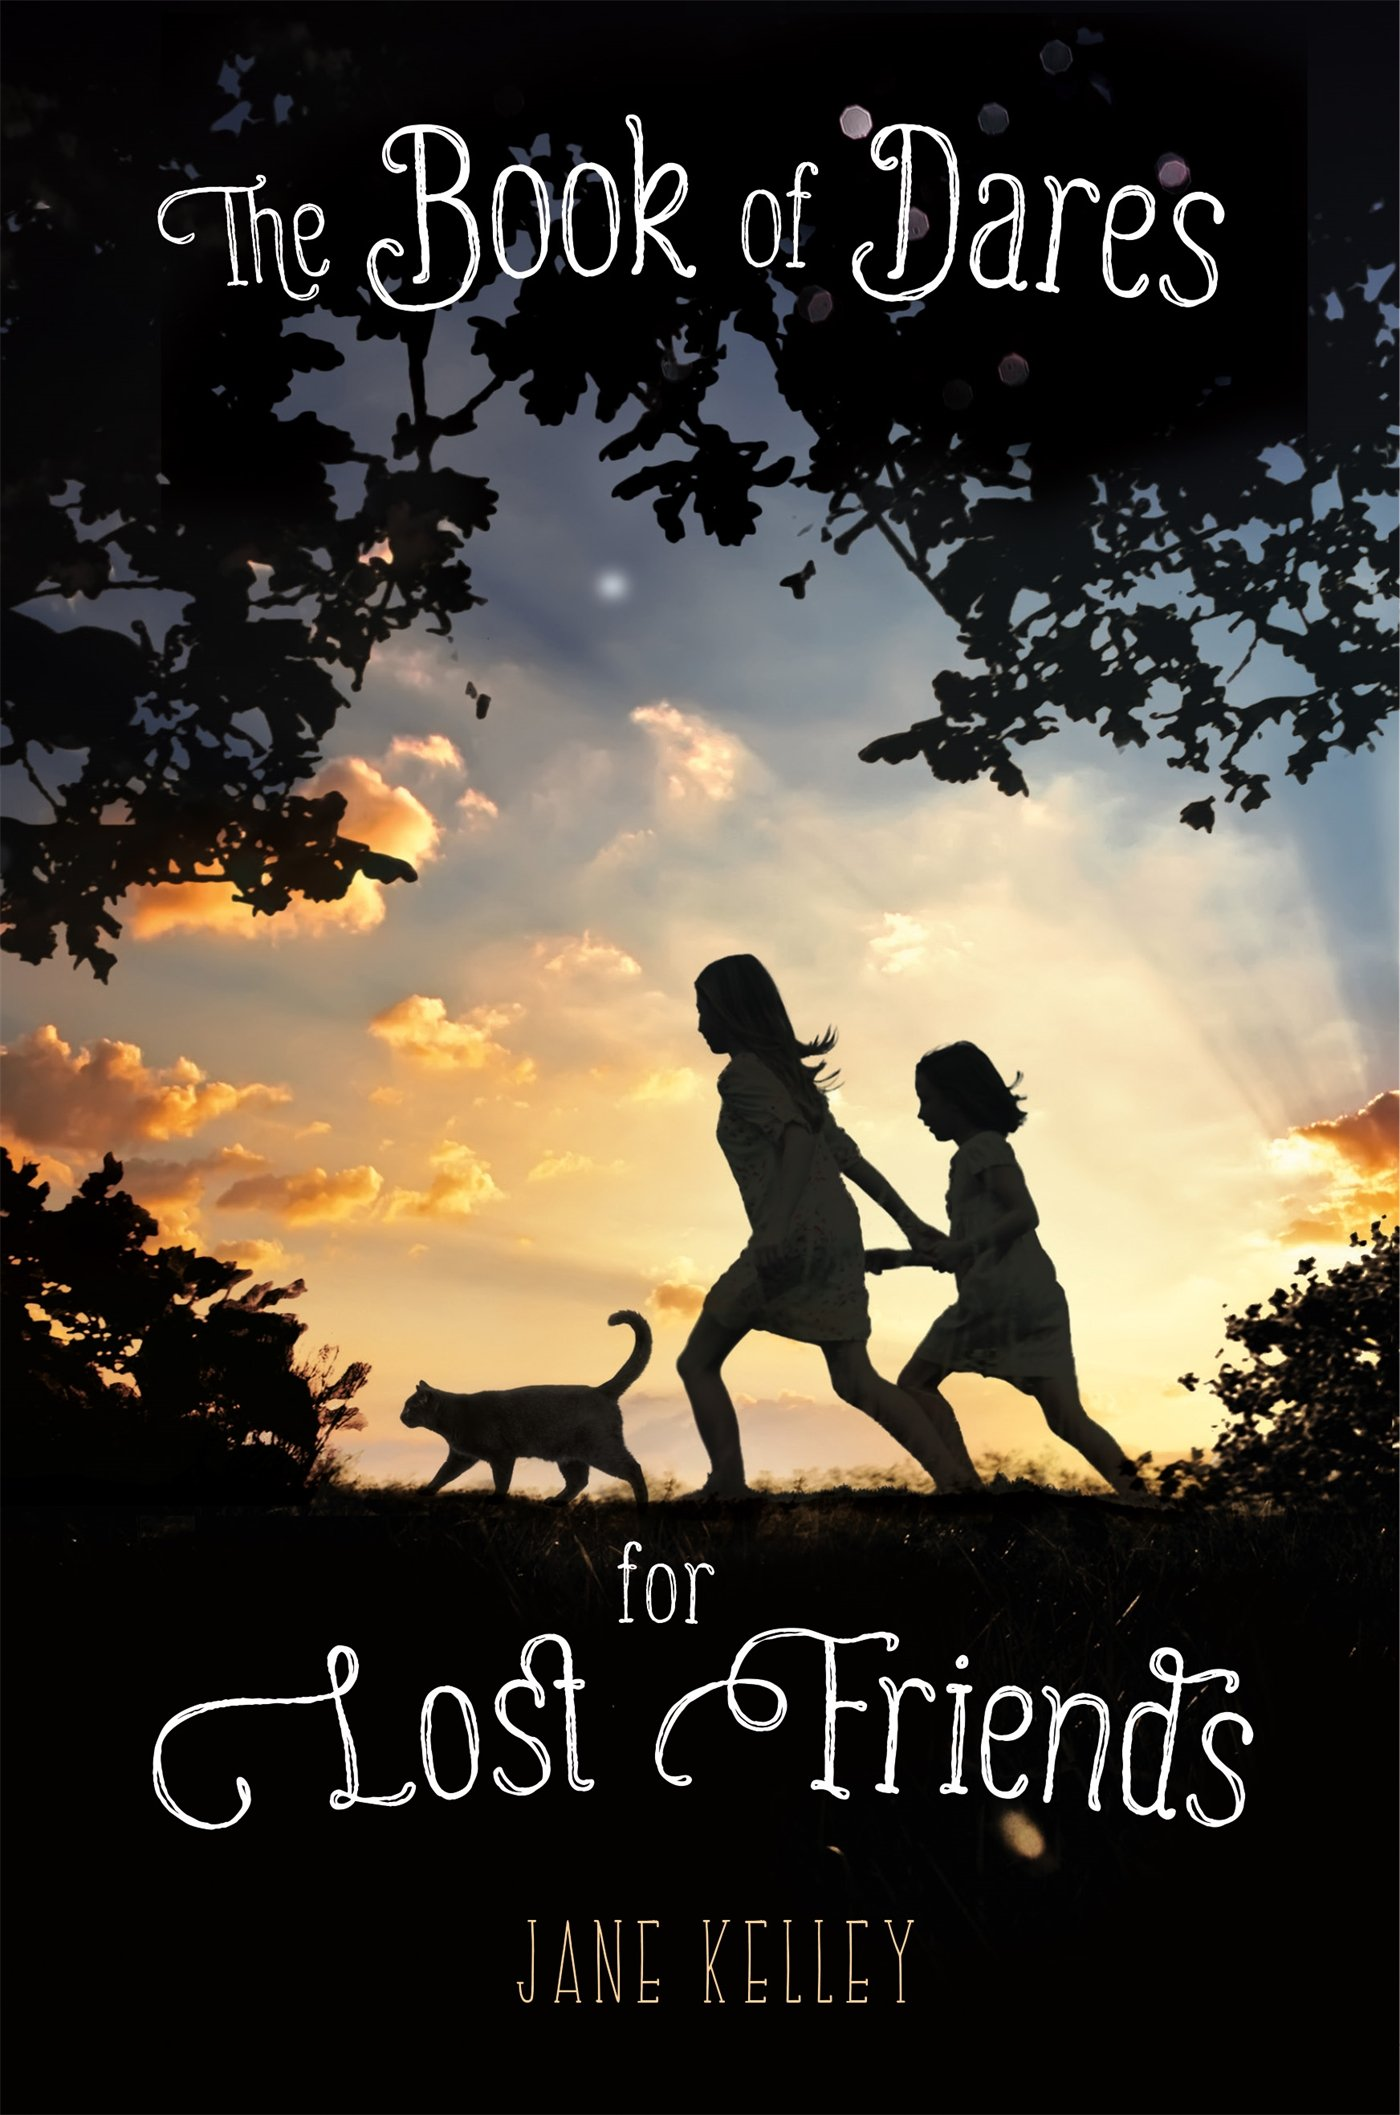 Read Online The Book of Dares for Lost Friends pdf epub